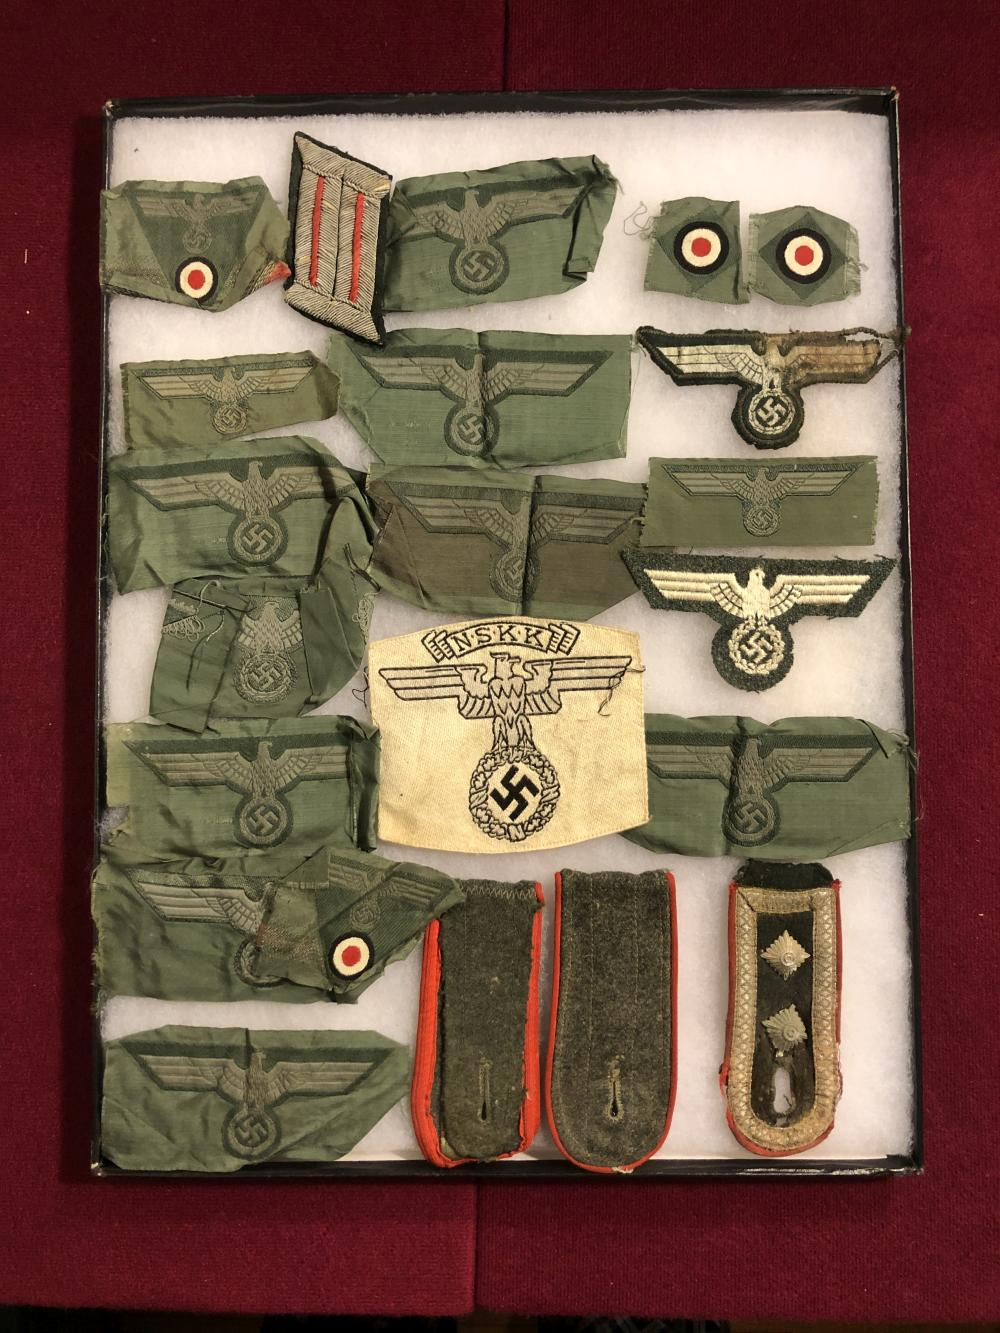 WWII German Nazi military patches, etc.